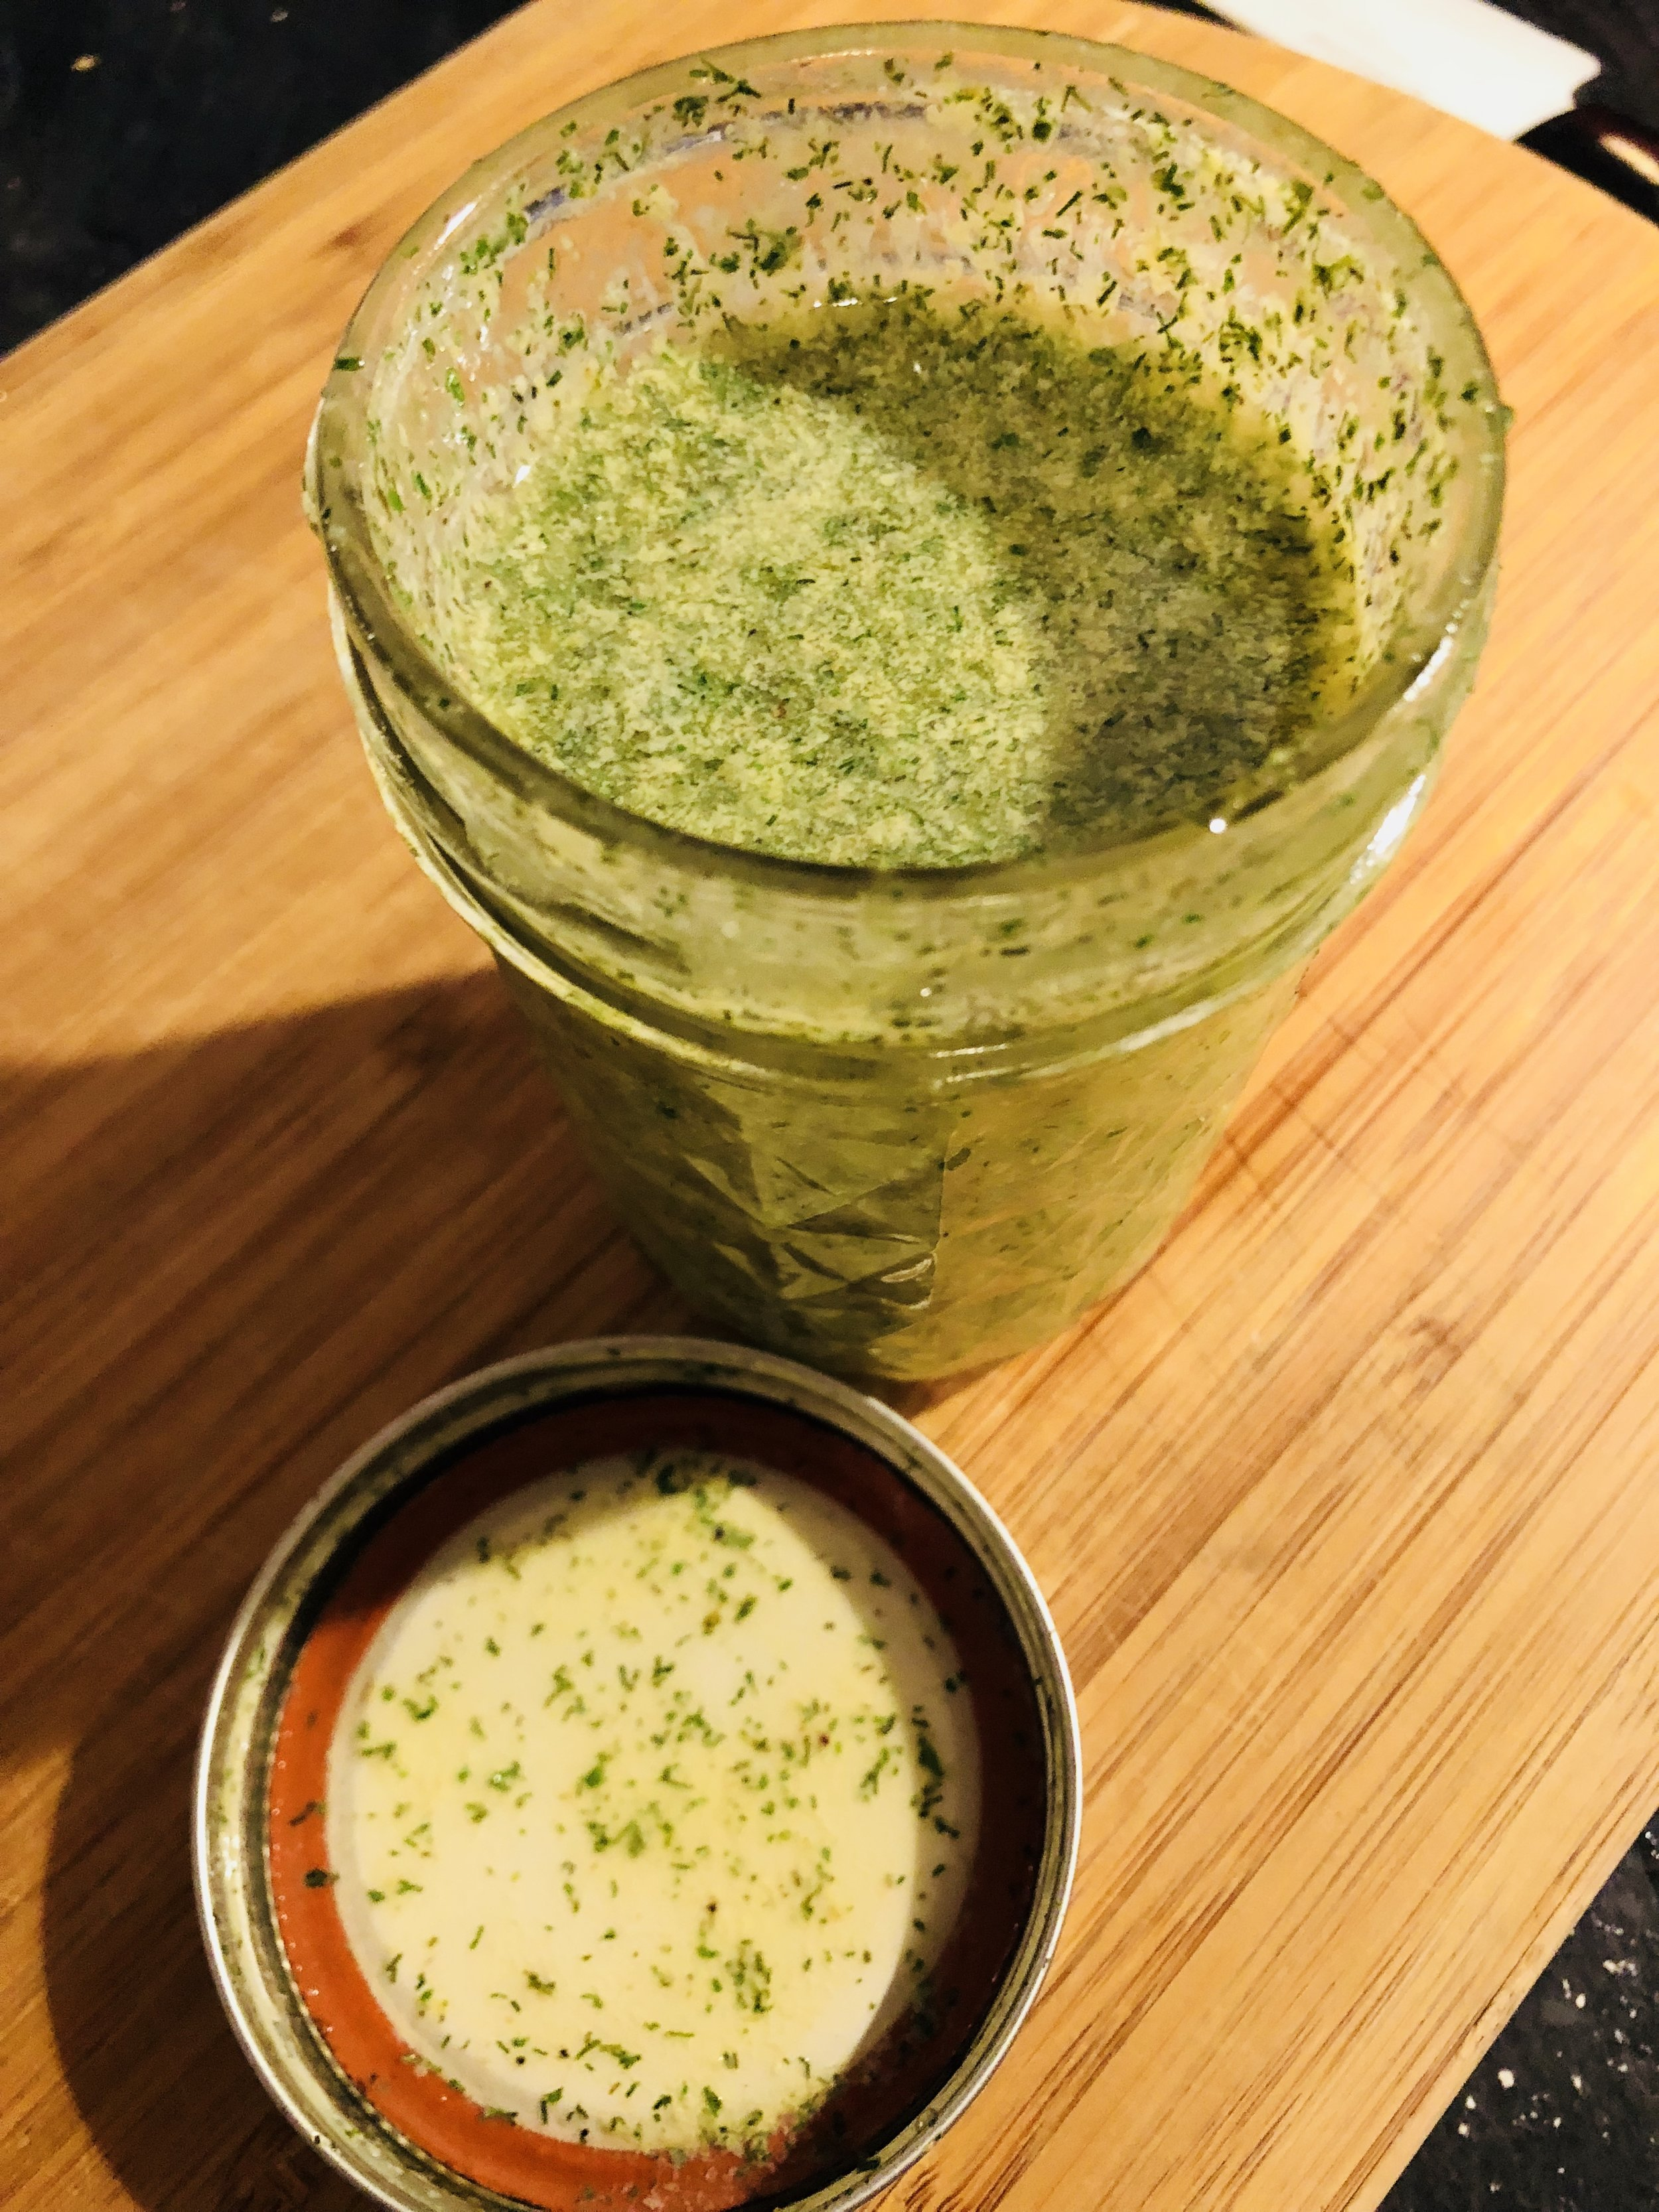 Green Dressing! No avocados were hurt in the making of this dressing!